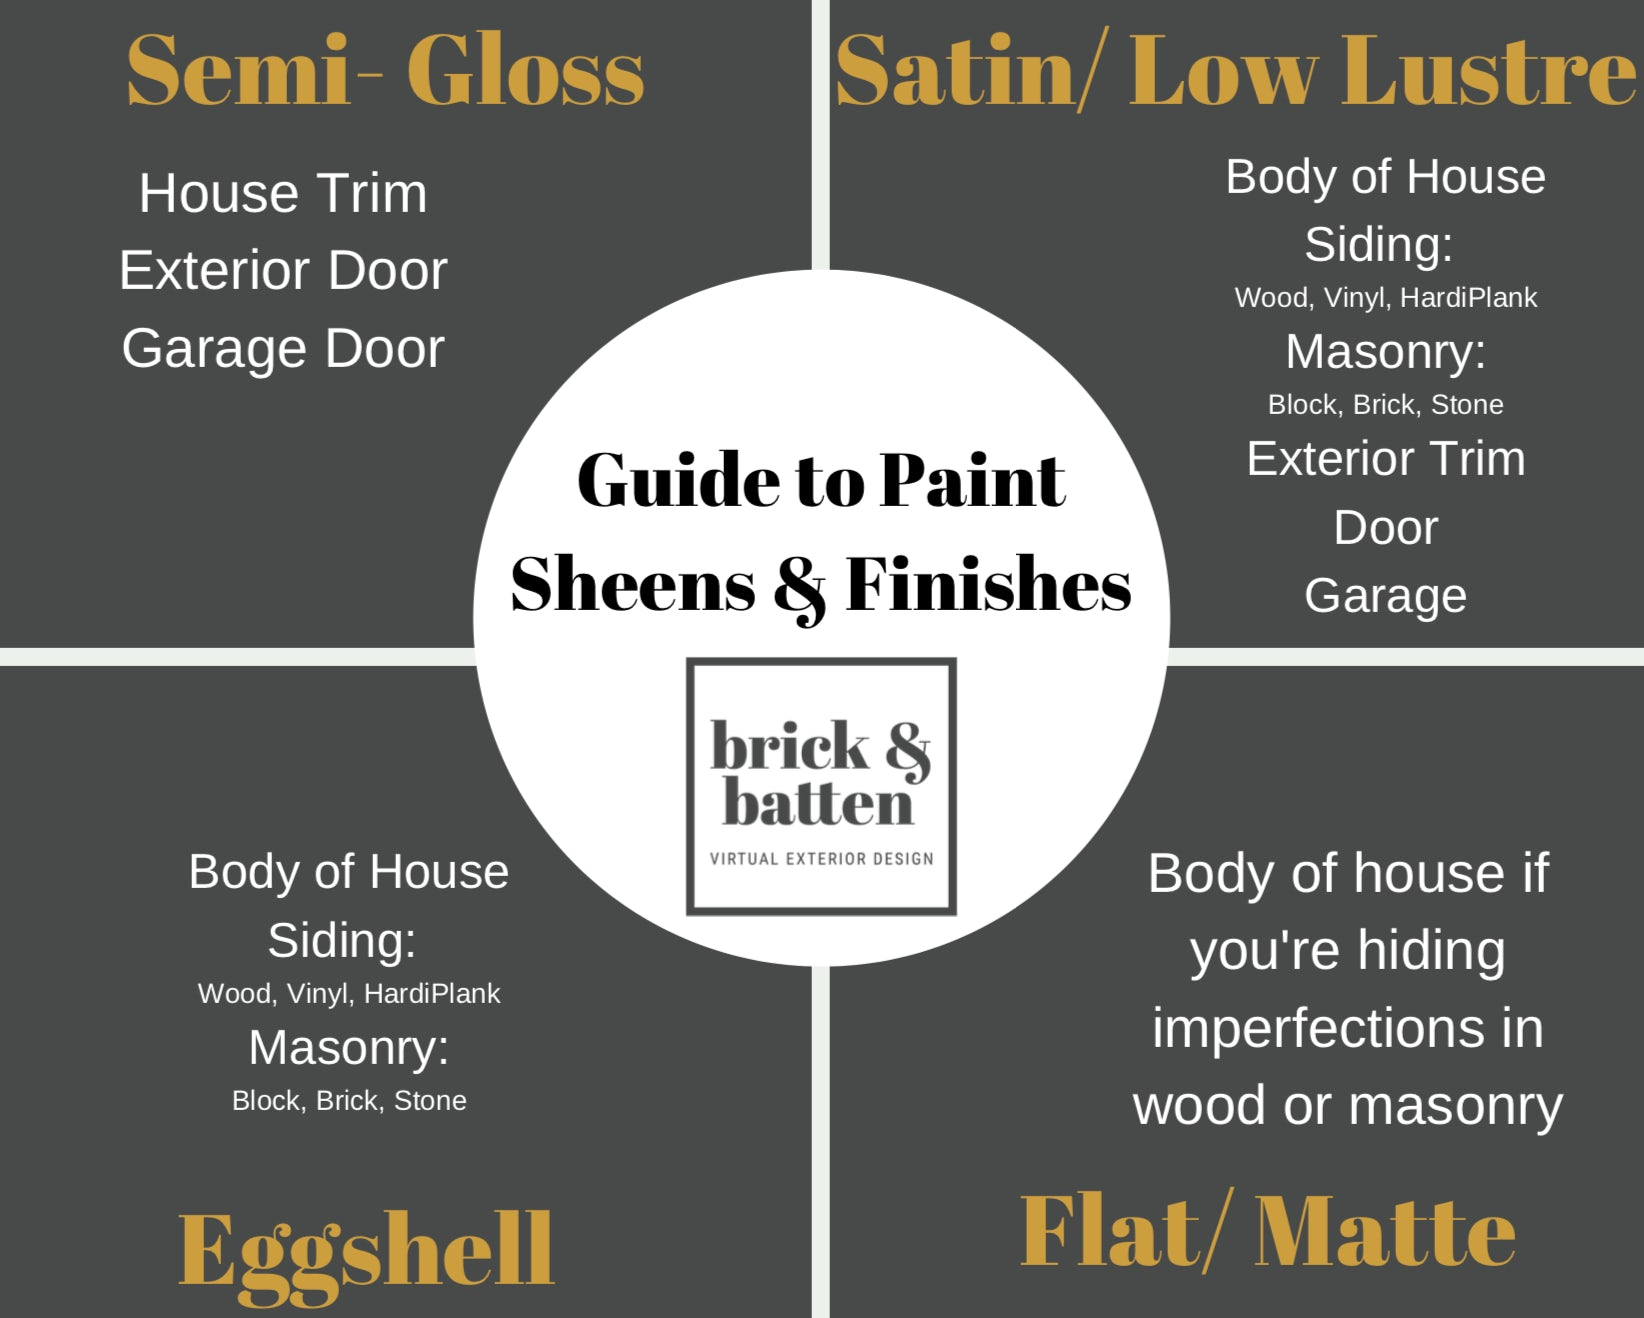 Guide to Paint Sheens and Finishes